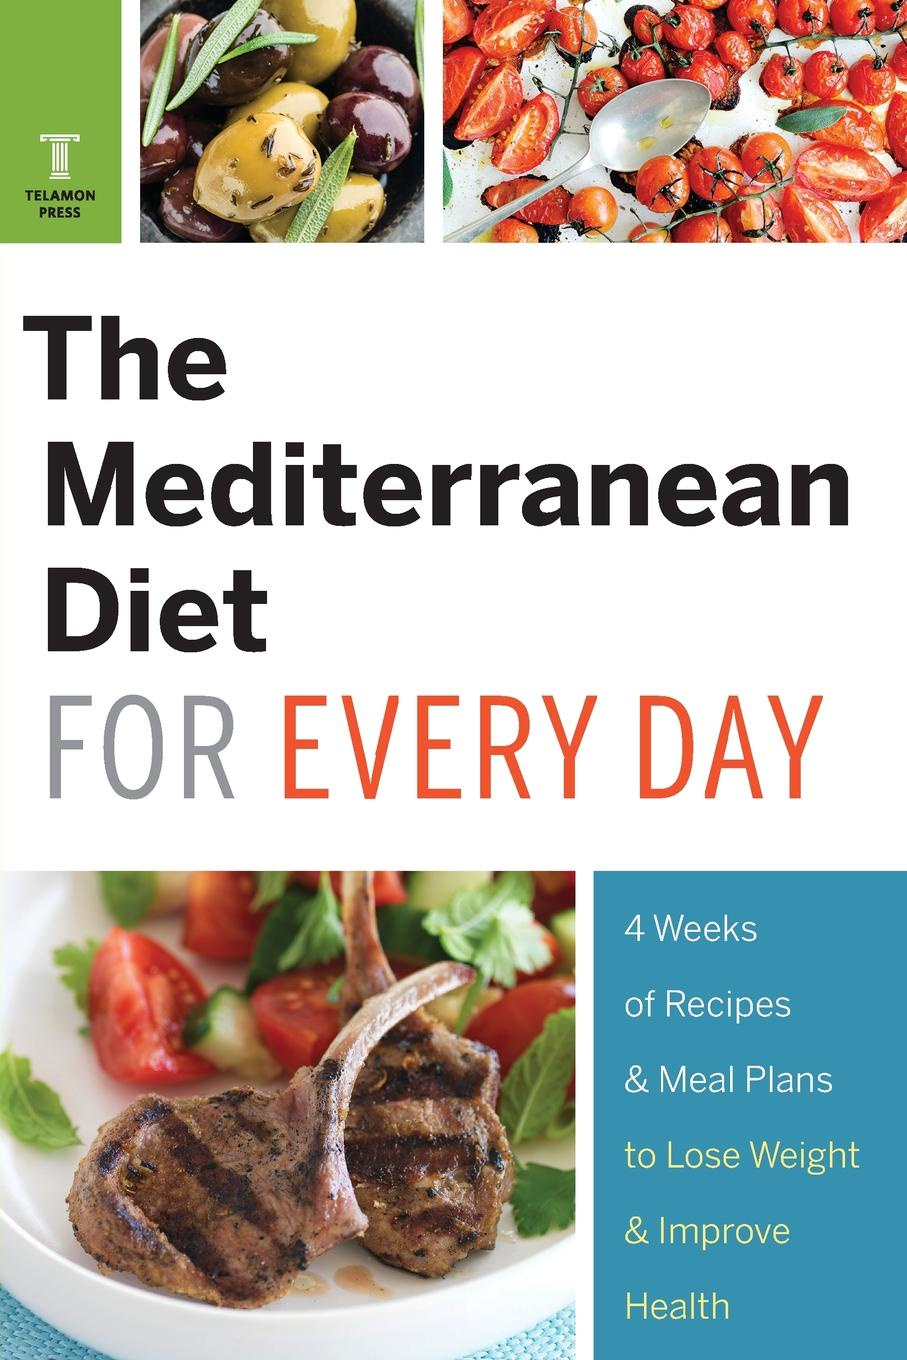 Telamon Press Mediterranean Diet for Every Day. 4 Weeks of Recipes & Meal Plans to Lose Weight dorothy stover amazing love diet